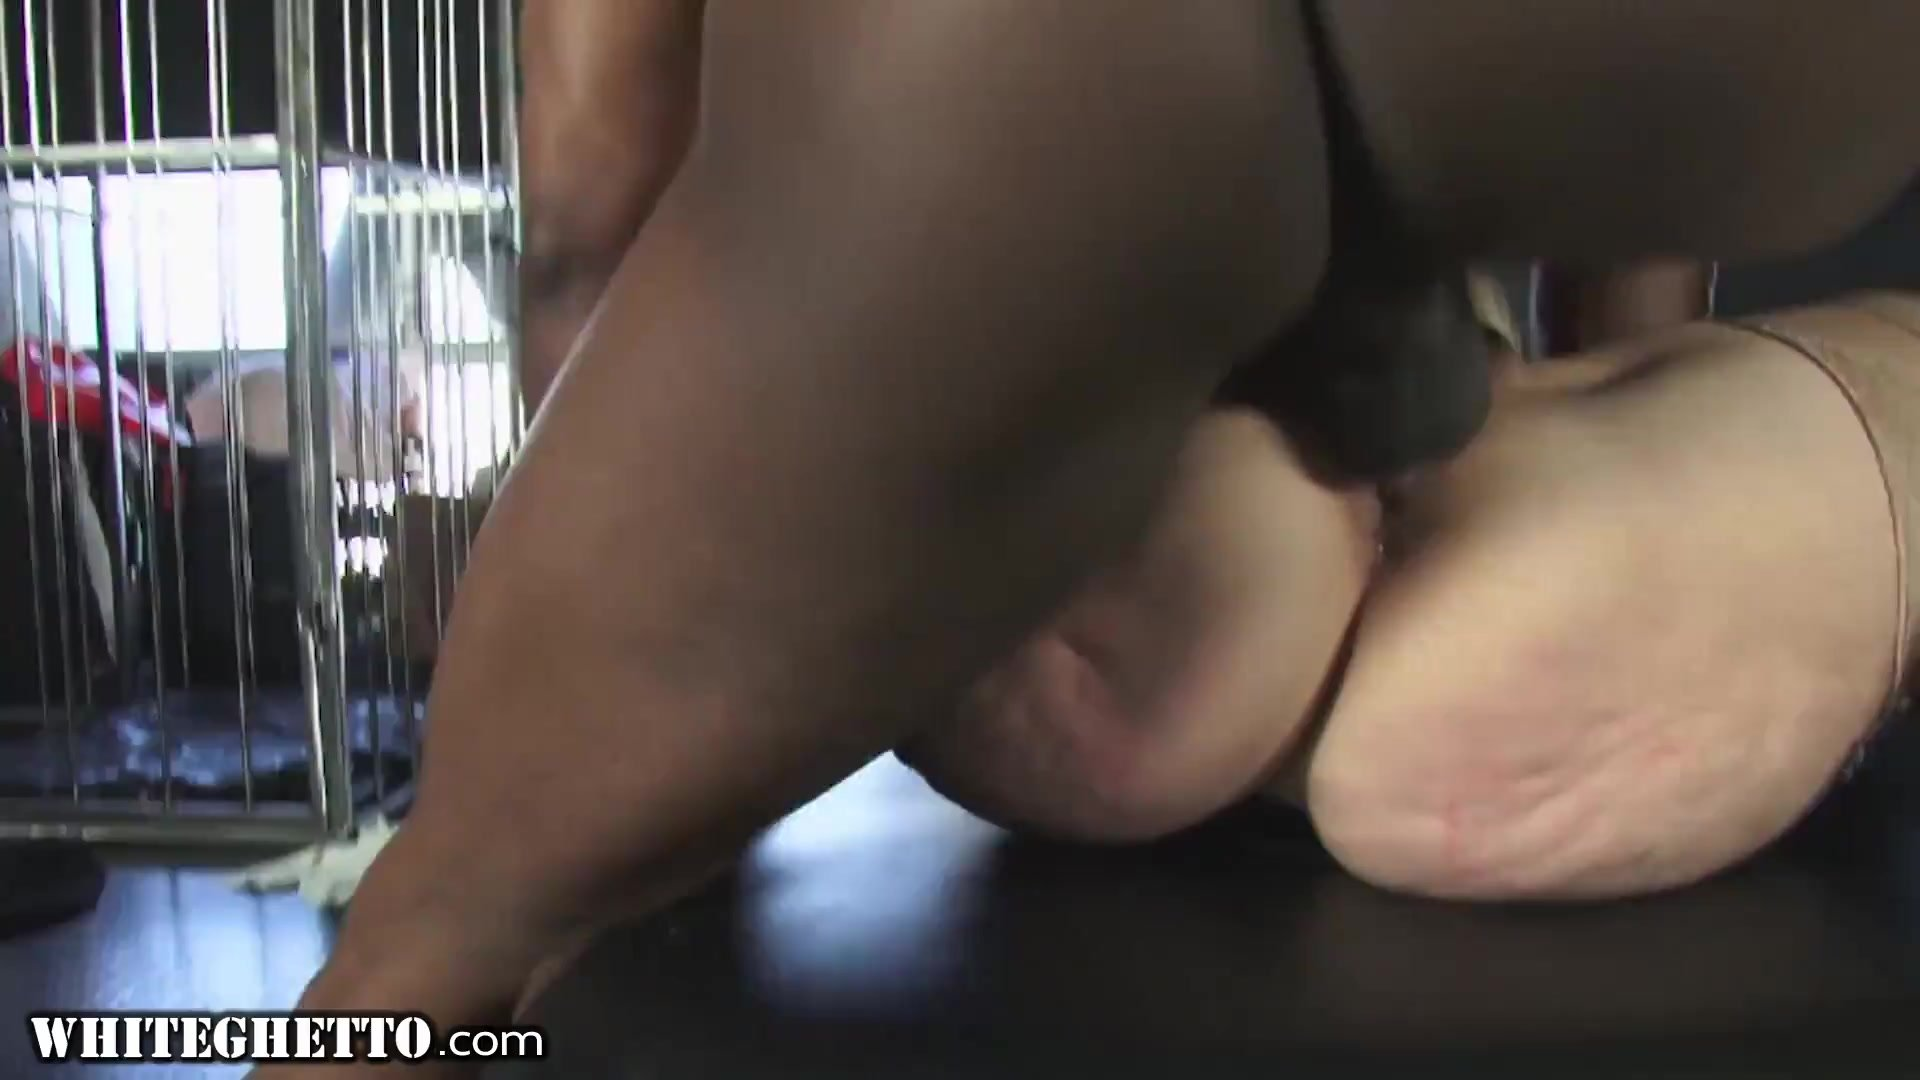 WhiteGhetto Hot GILF Gets Multiple Orgasms From A Big Dick In Her Sex Dungeon